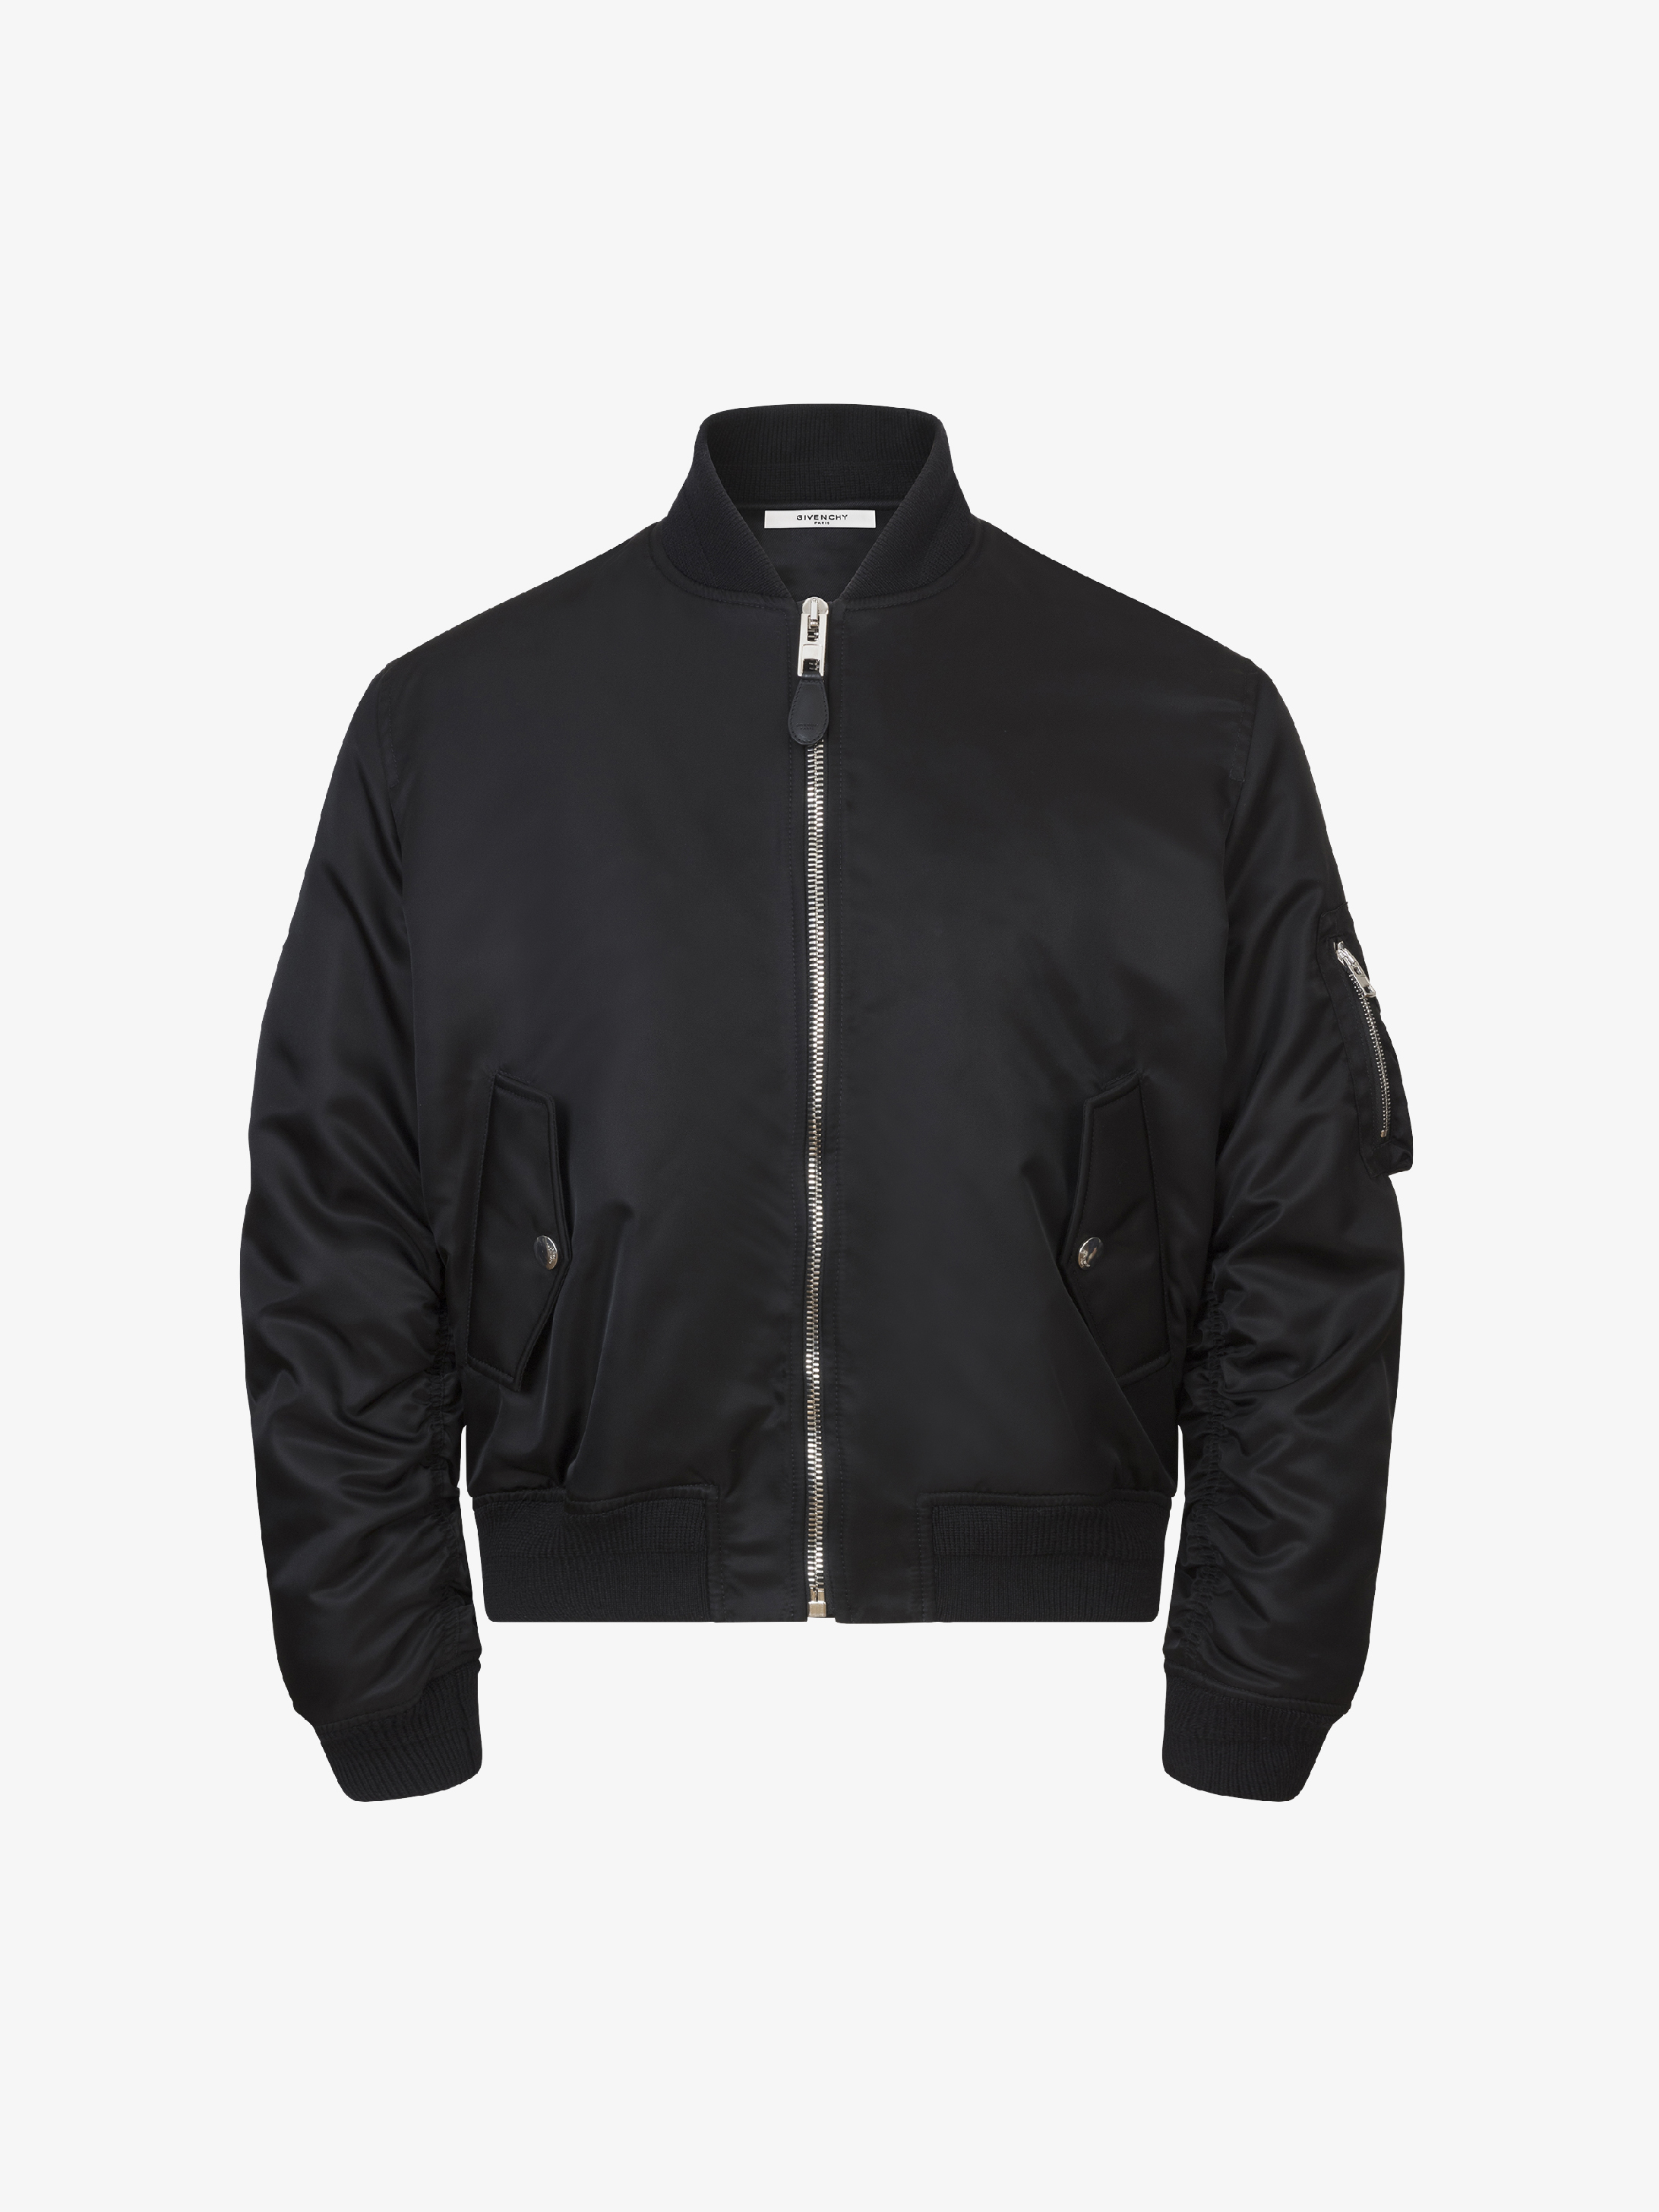 Third Eye patch bomber jacket